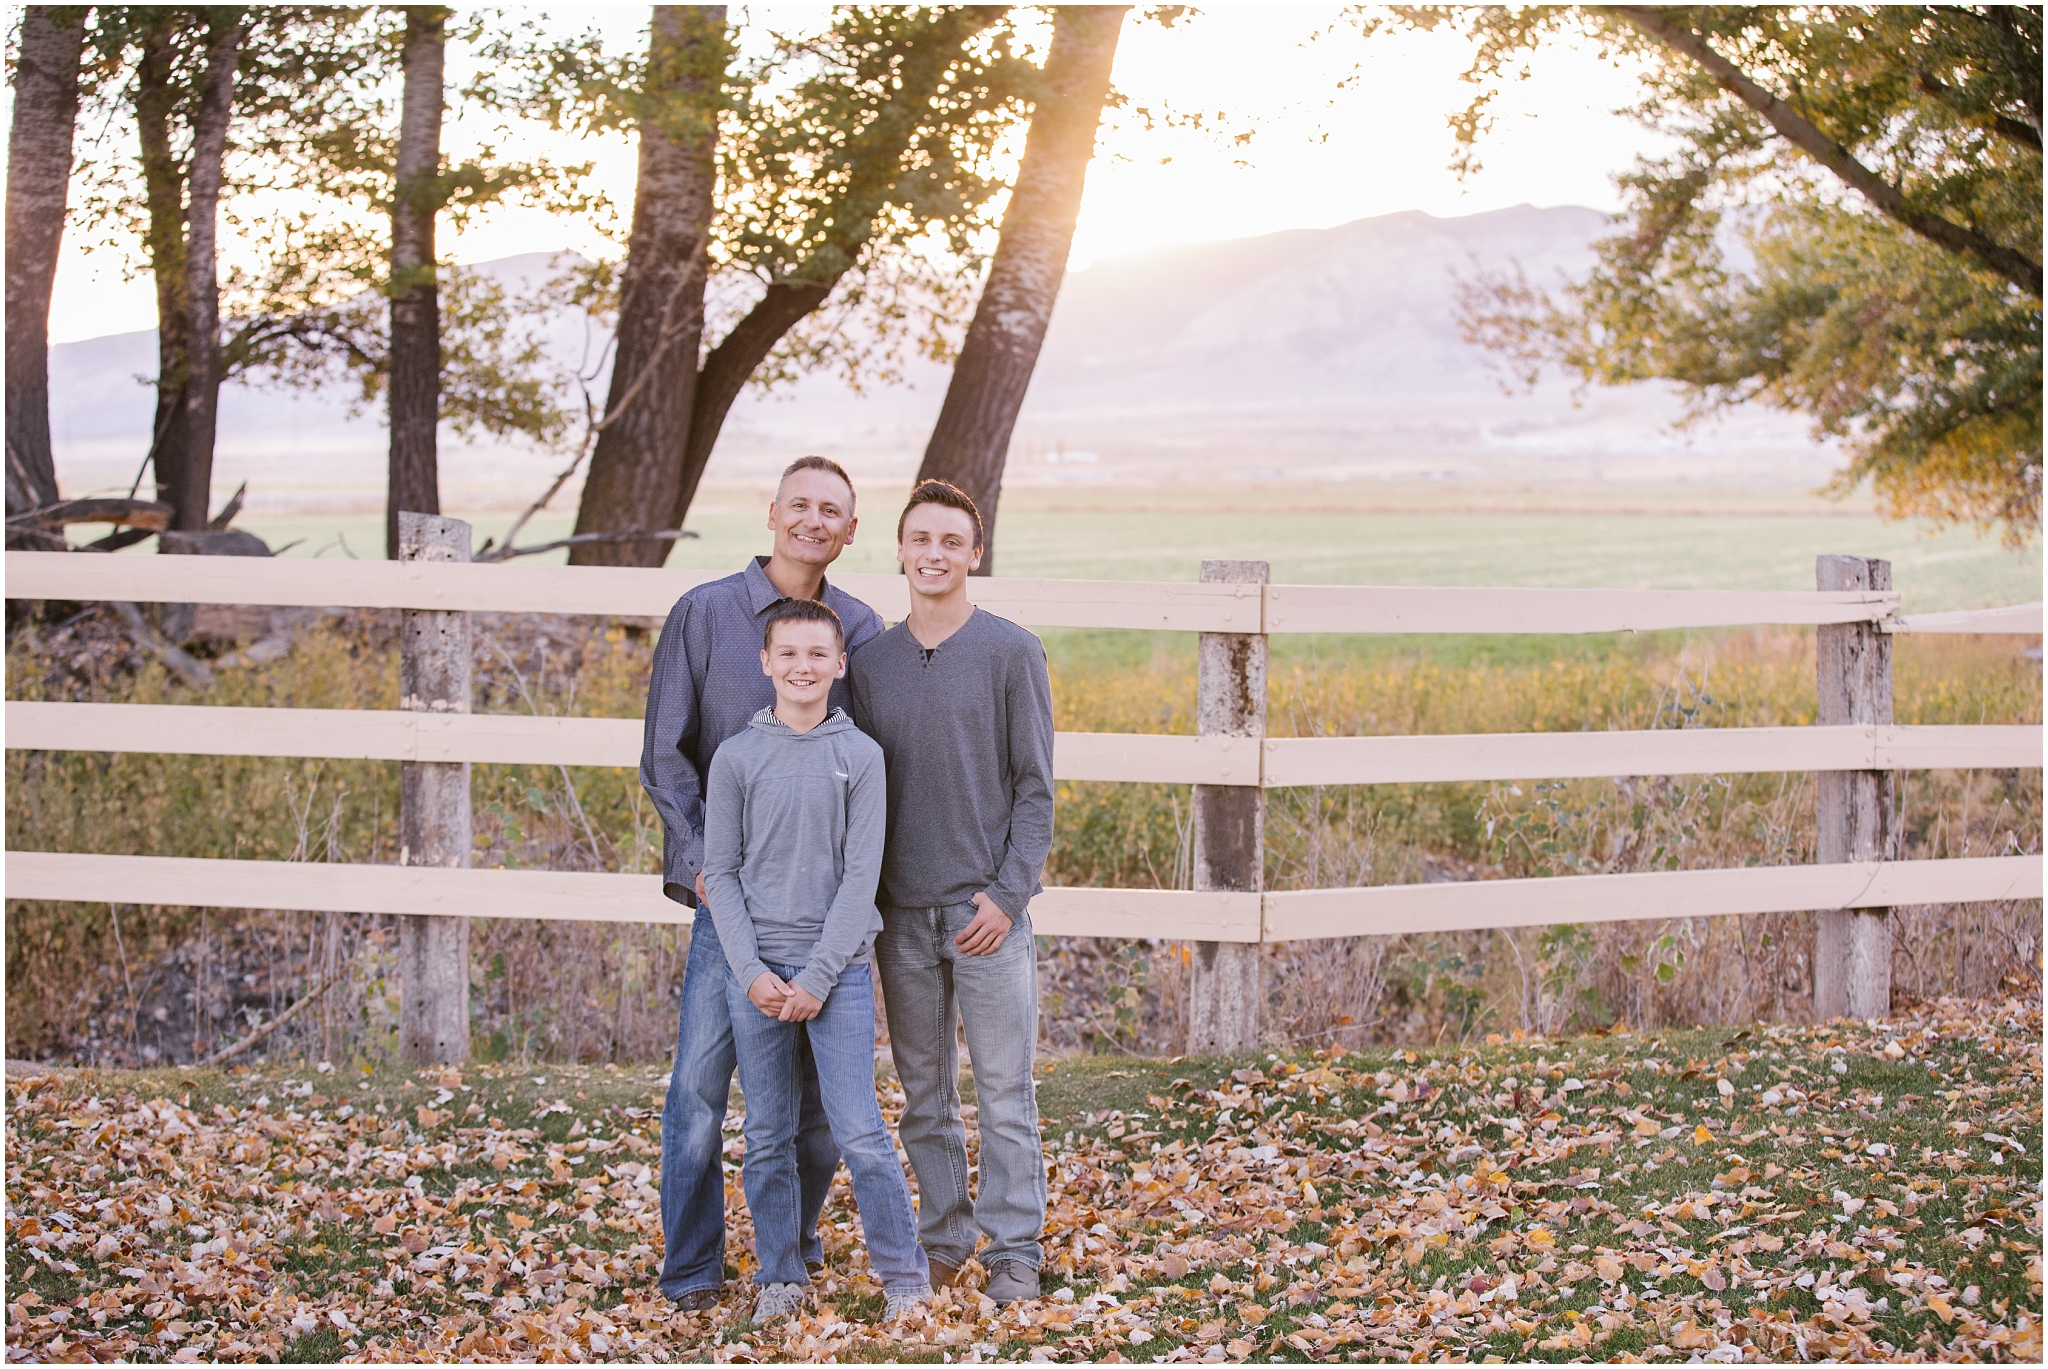 Fielding-45_Lizzie-B-Imagery-Utah-Family-Photographer-Central-Utah-Park-City-Salt-Lake-City.jpg